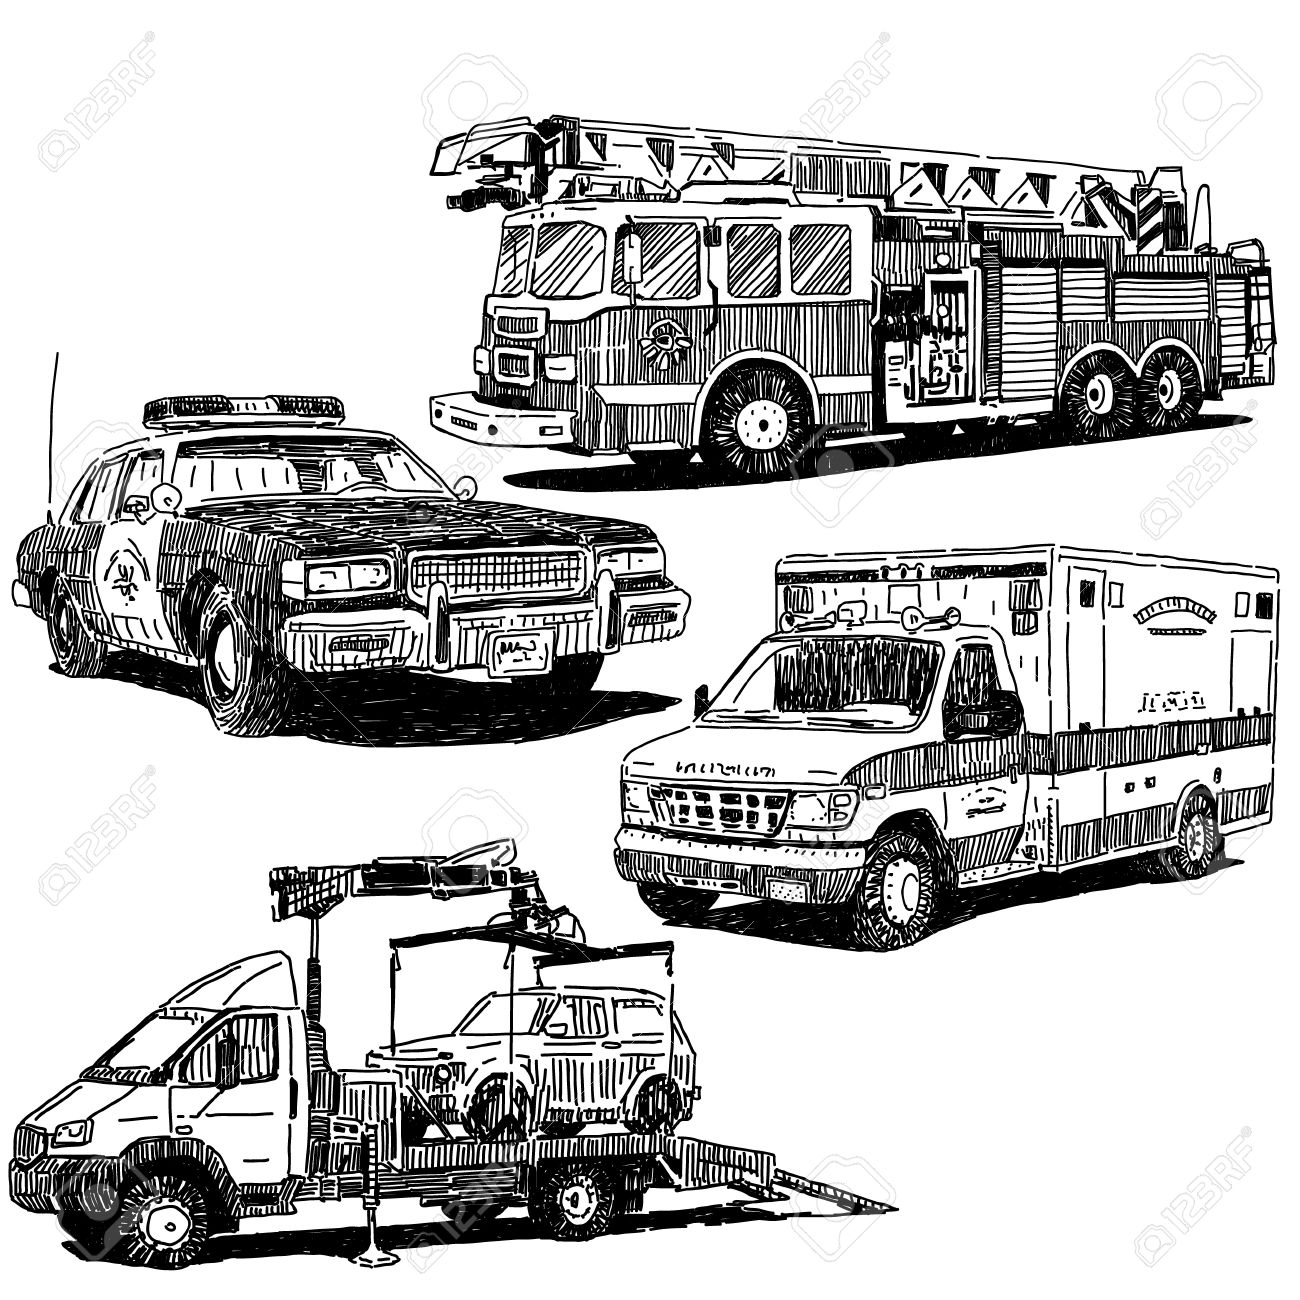 Fire truck, police car, ambulance and tow truck drawings set, sketch drawing style - 53071369